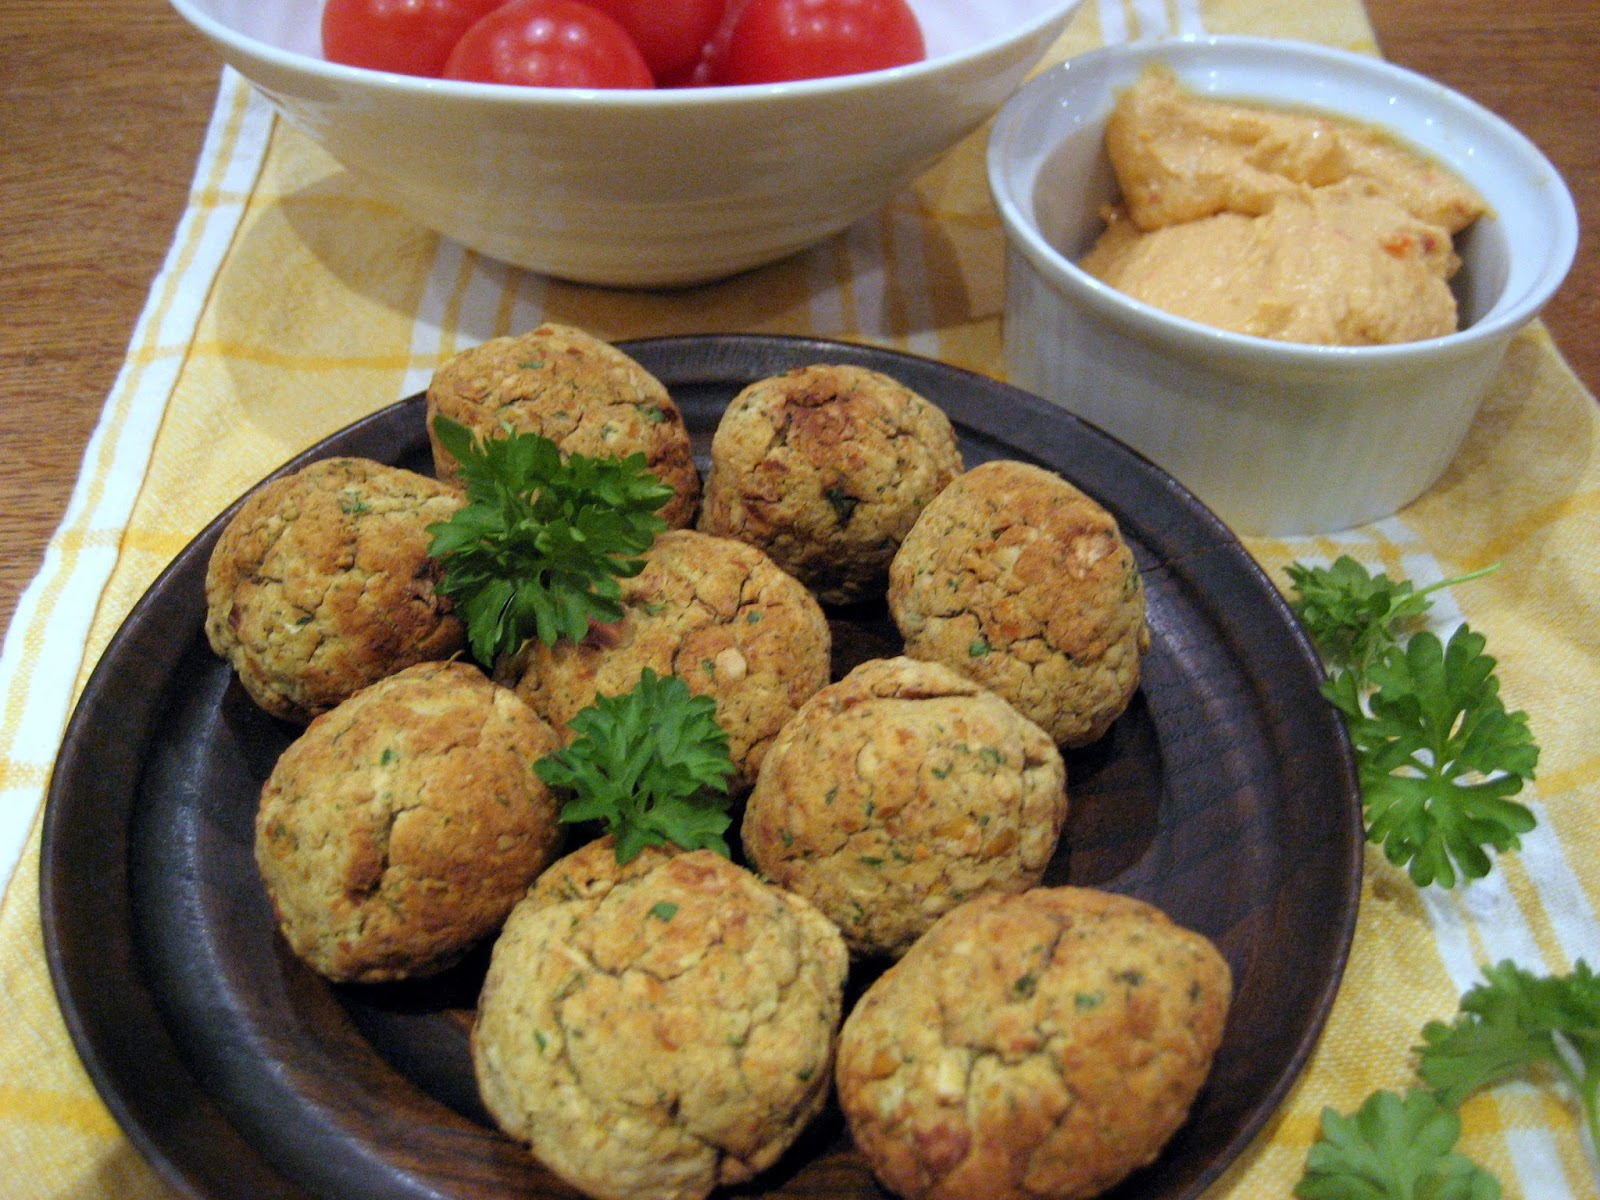 Middle-East recipe falafel chickpeas coriander spices meze snack